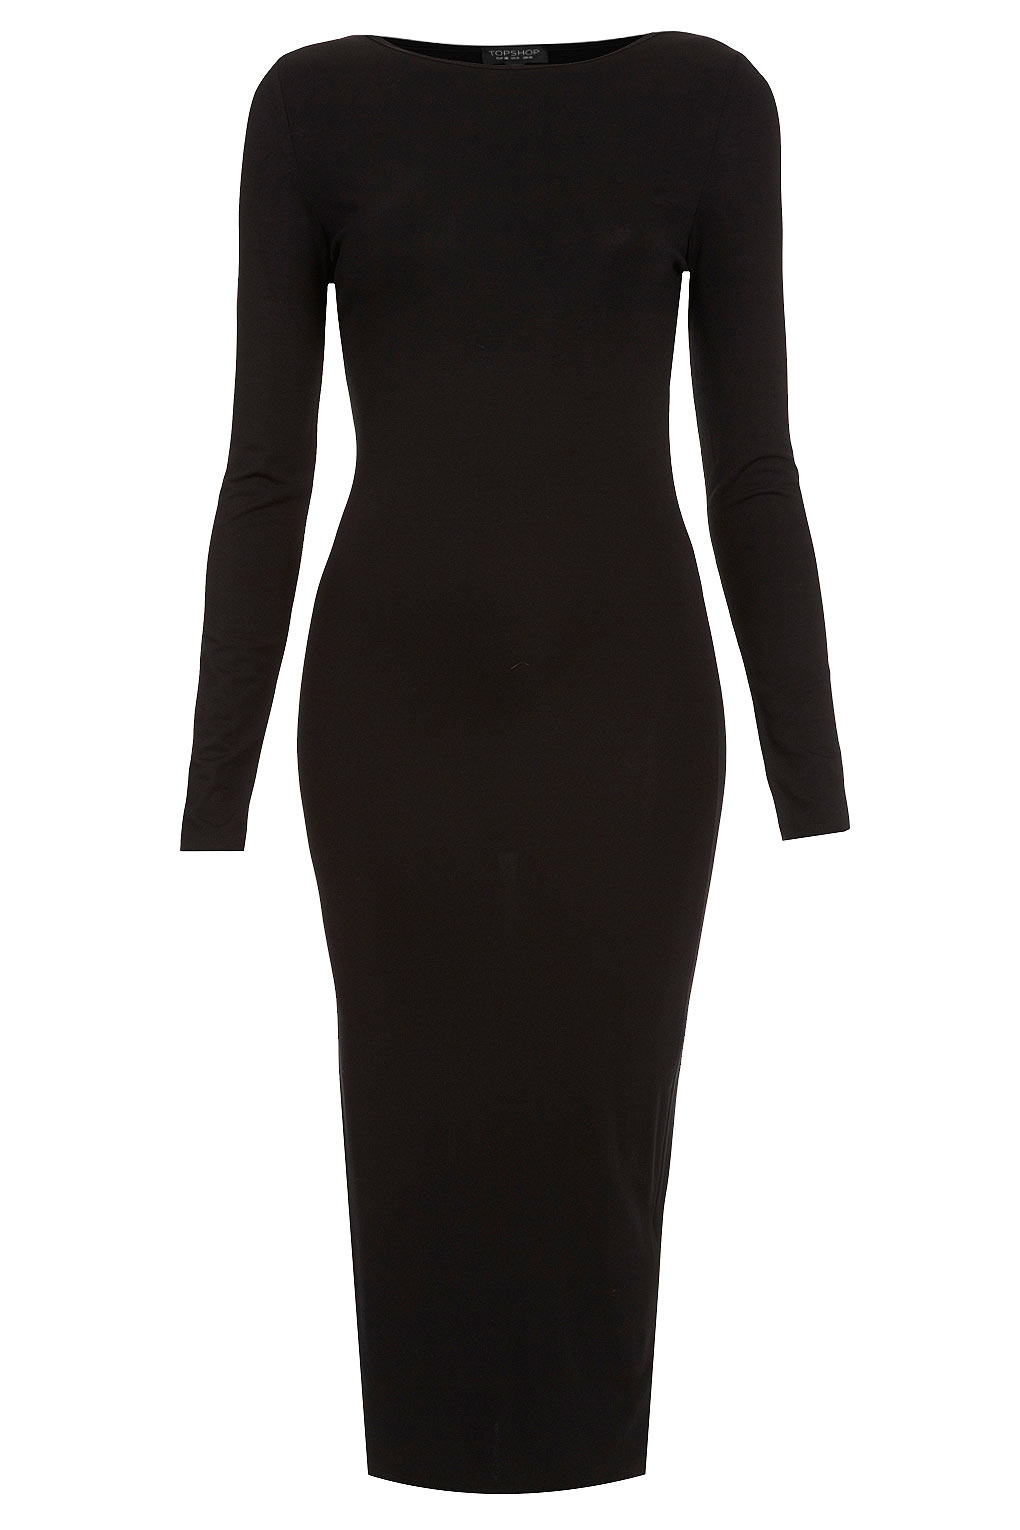 5f8fa60a3f6 TOPSHOP Plain Midi Bodycon Dress in Black - Lyst